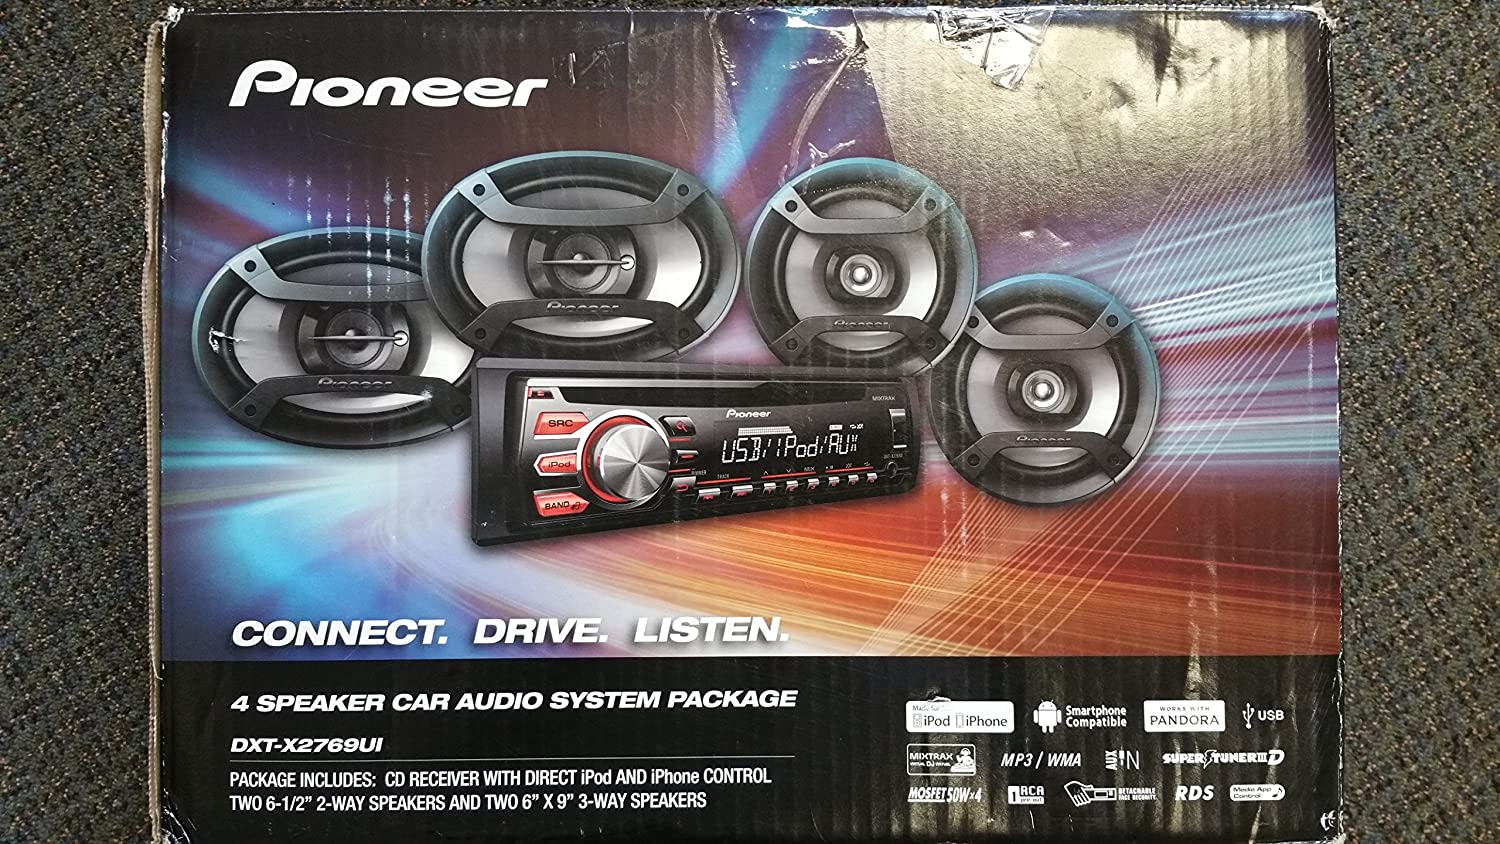 pioneer 4 speaker car audio system package. amazon.com: pioneer car stereo audio combo pack 4 speakers + aux cable am fm cd mp3 player input 200 watts dxt-x2769ui00 truck suv bus: electronics speaker system package